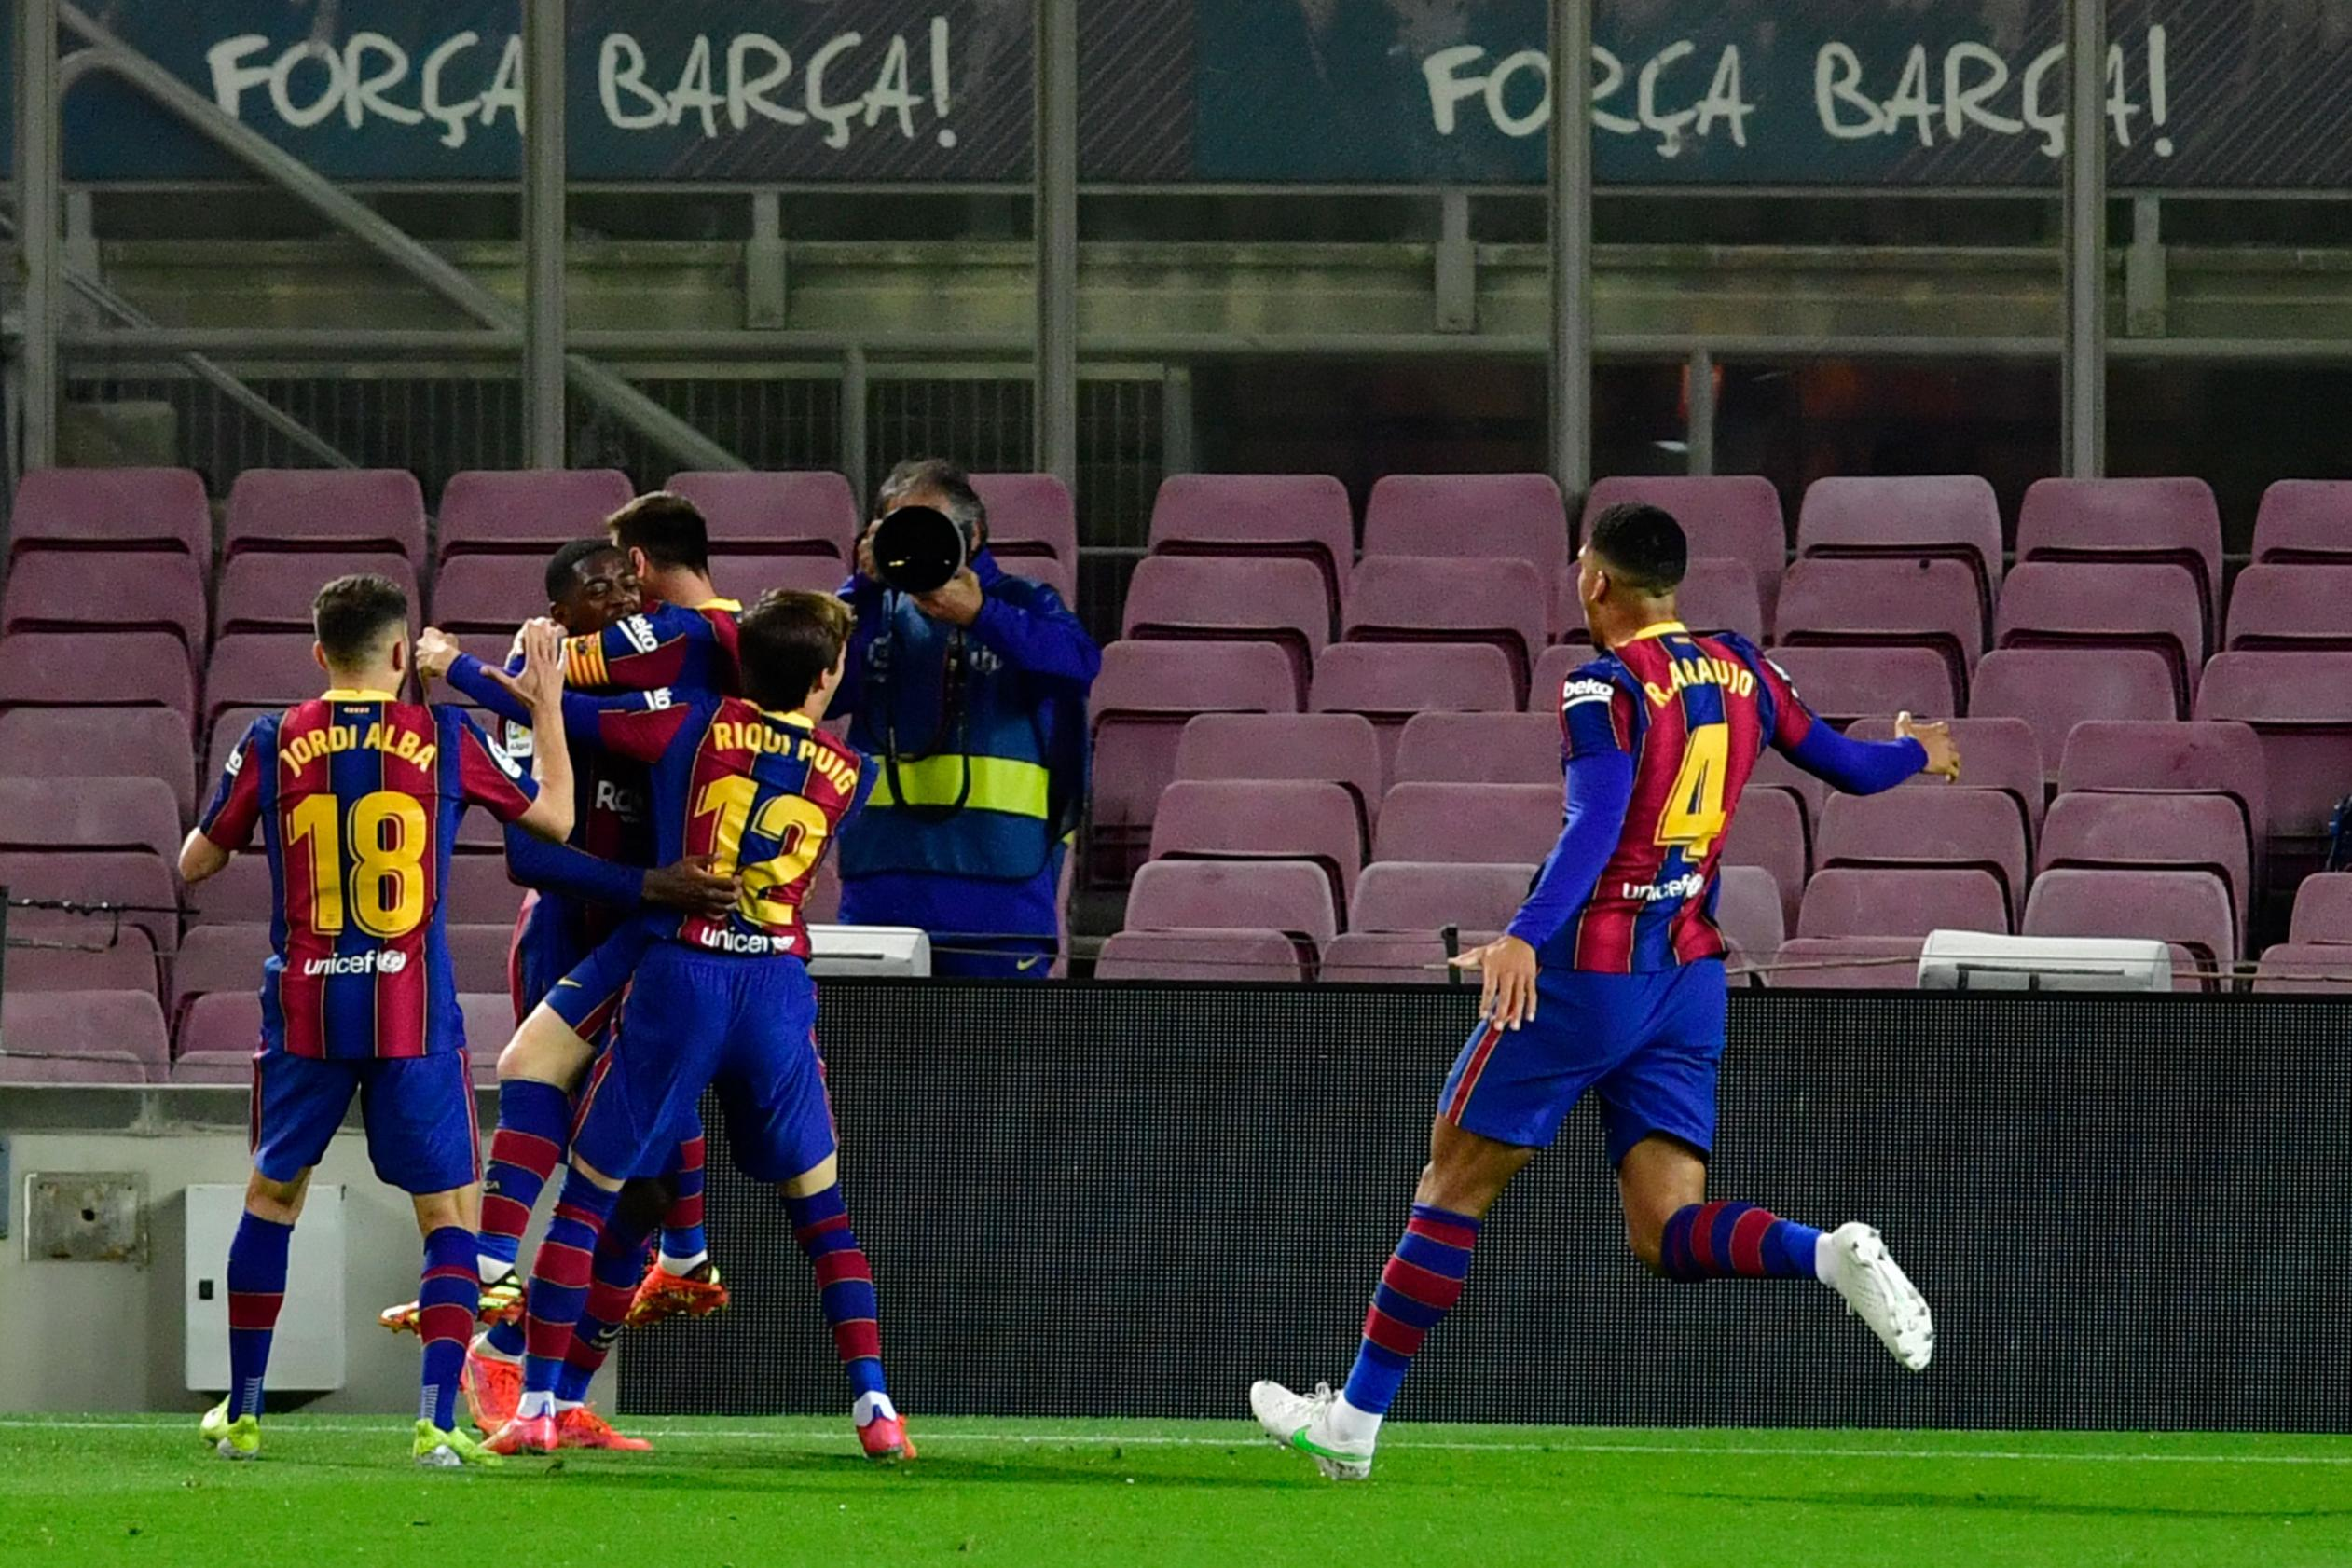 Ousmane Dembele's late winner moves Barcelona to within touching distance of La Liga summit